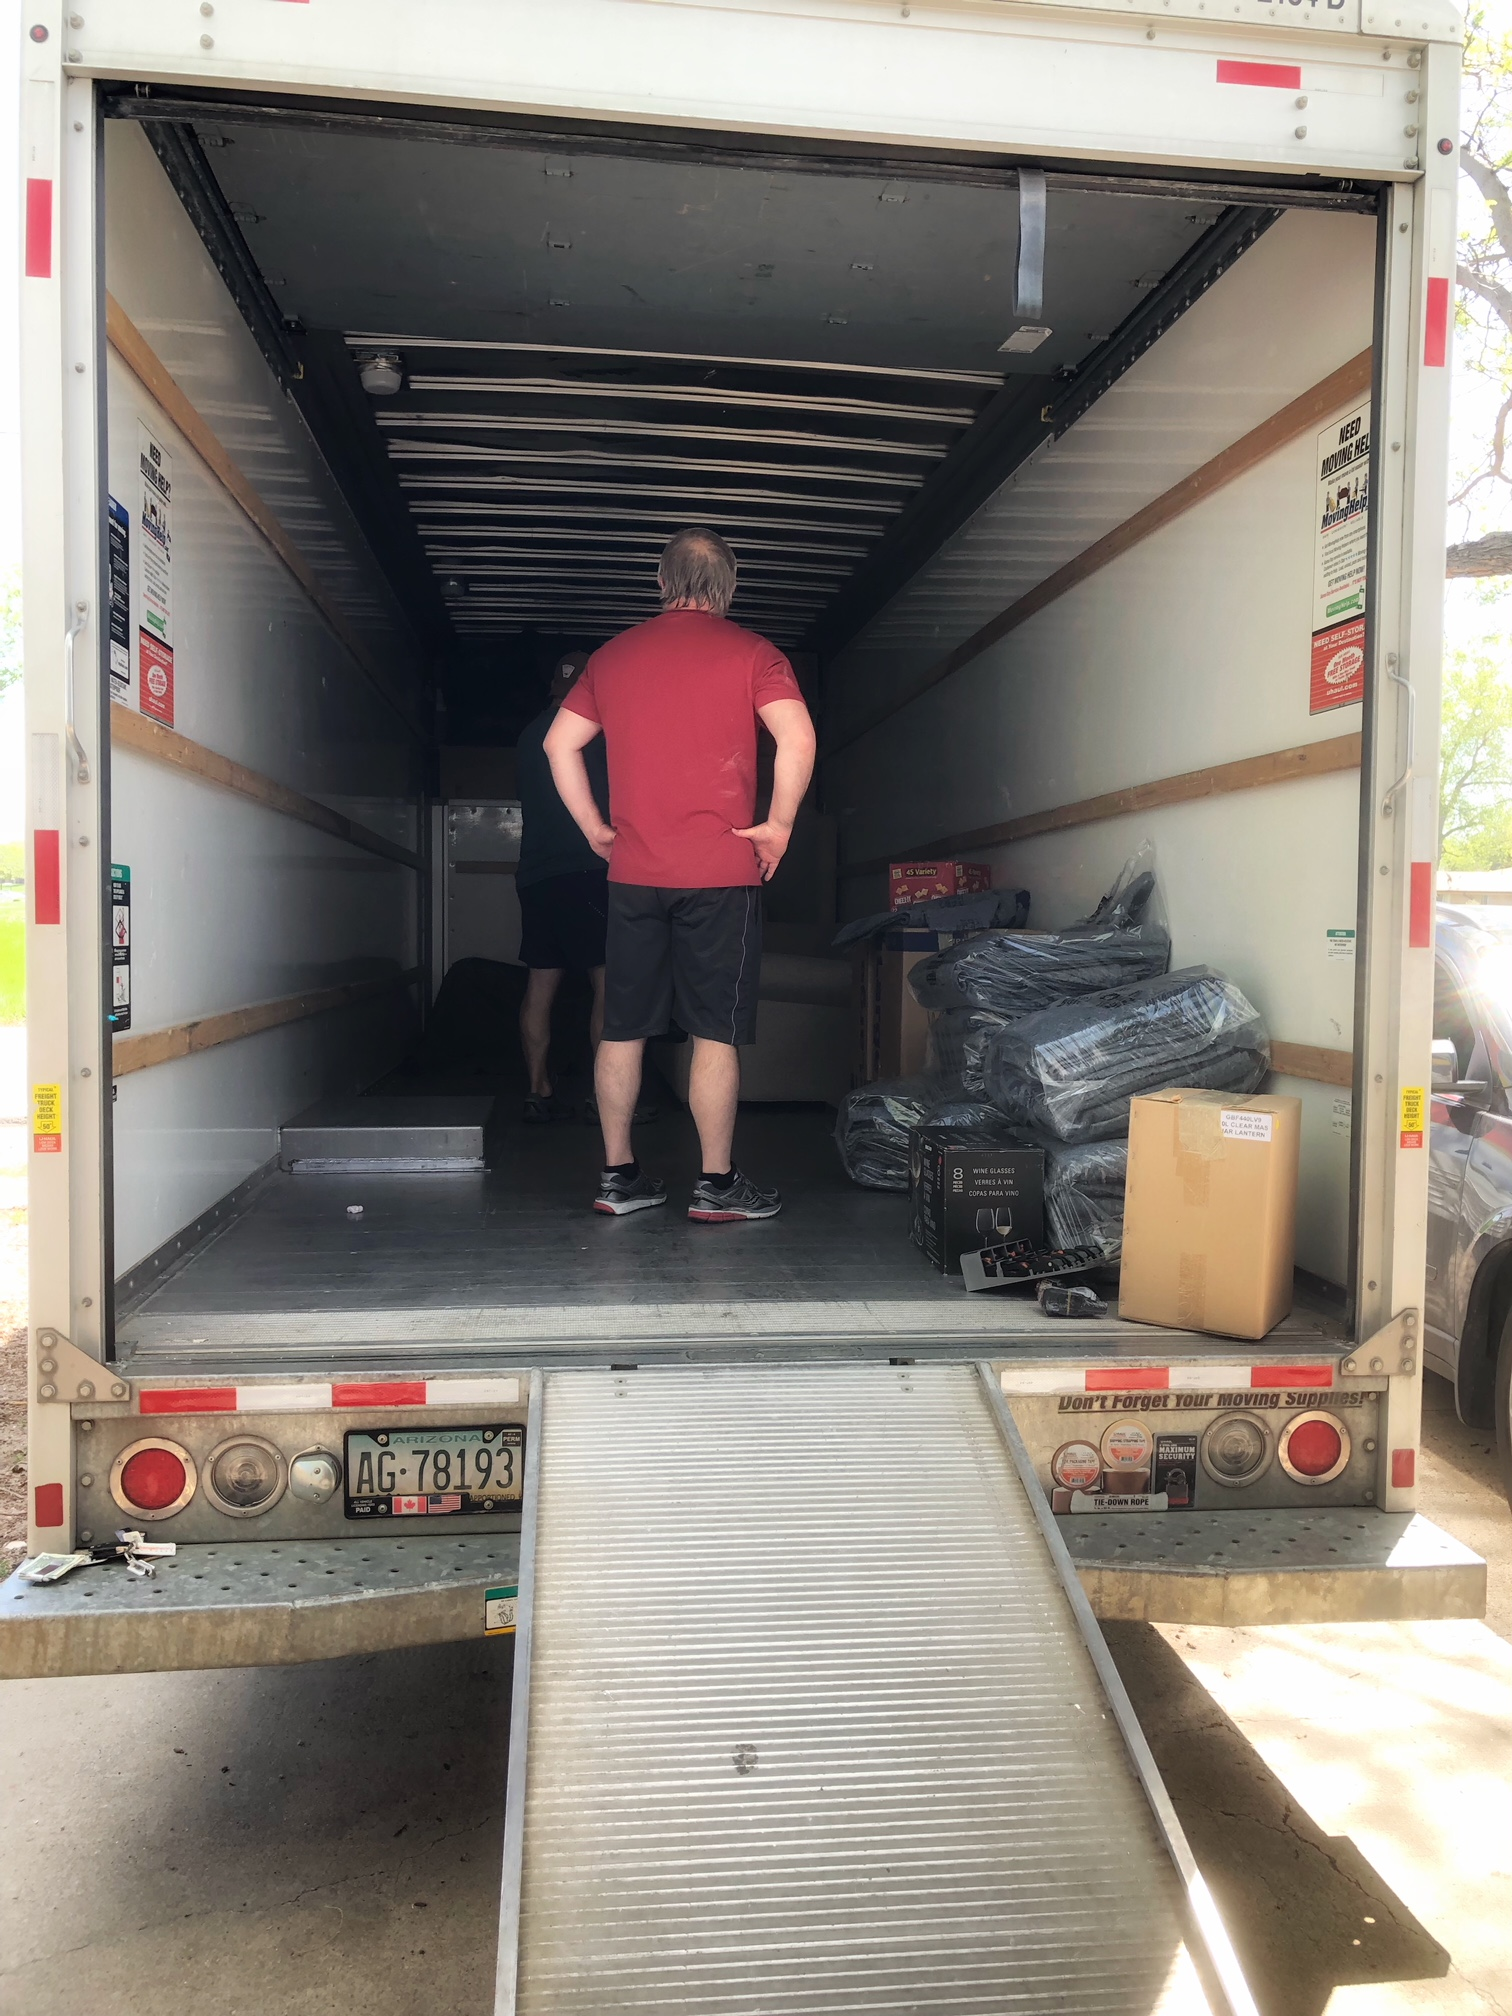 The truck is ready for boxes!